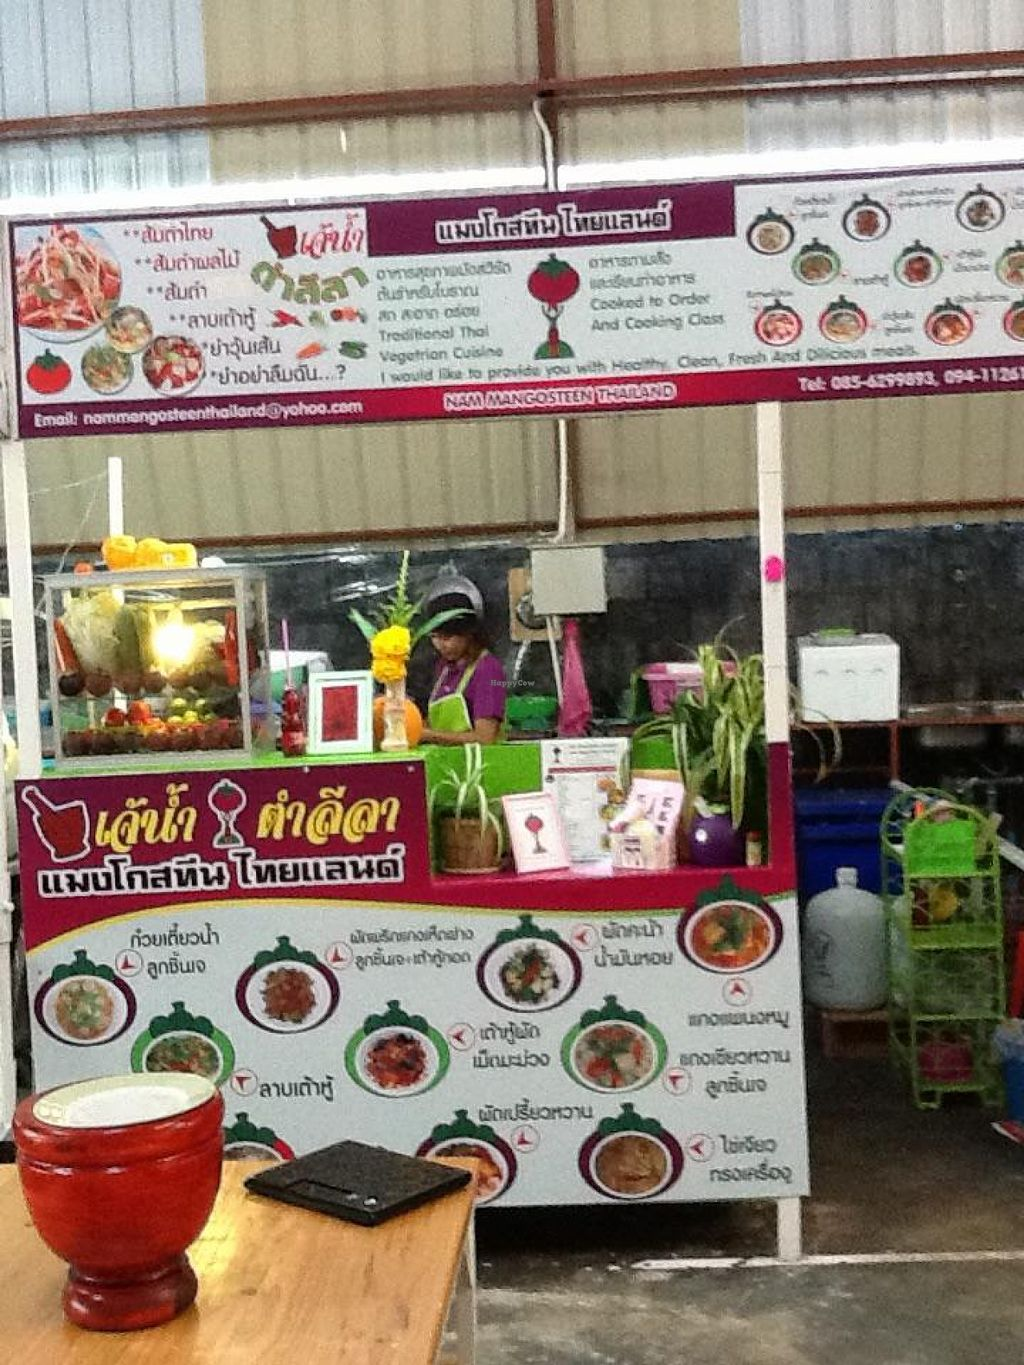 """Photo of CLOSED: Nam Mangosteen Thailand   by <a href=""""/members/profile/Tim_nottingham"""">Tim_nottingham</a> <br/>The stall in the food hall.  <br/> July 30, 2015  - <a href='/contact/abuse/image/61185/111565'>Report</a>"""